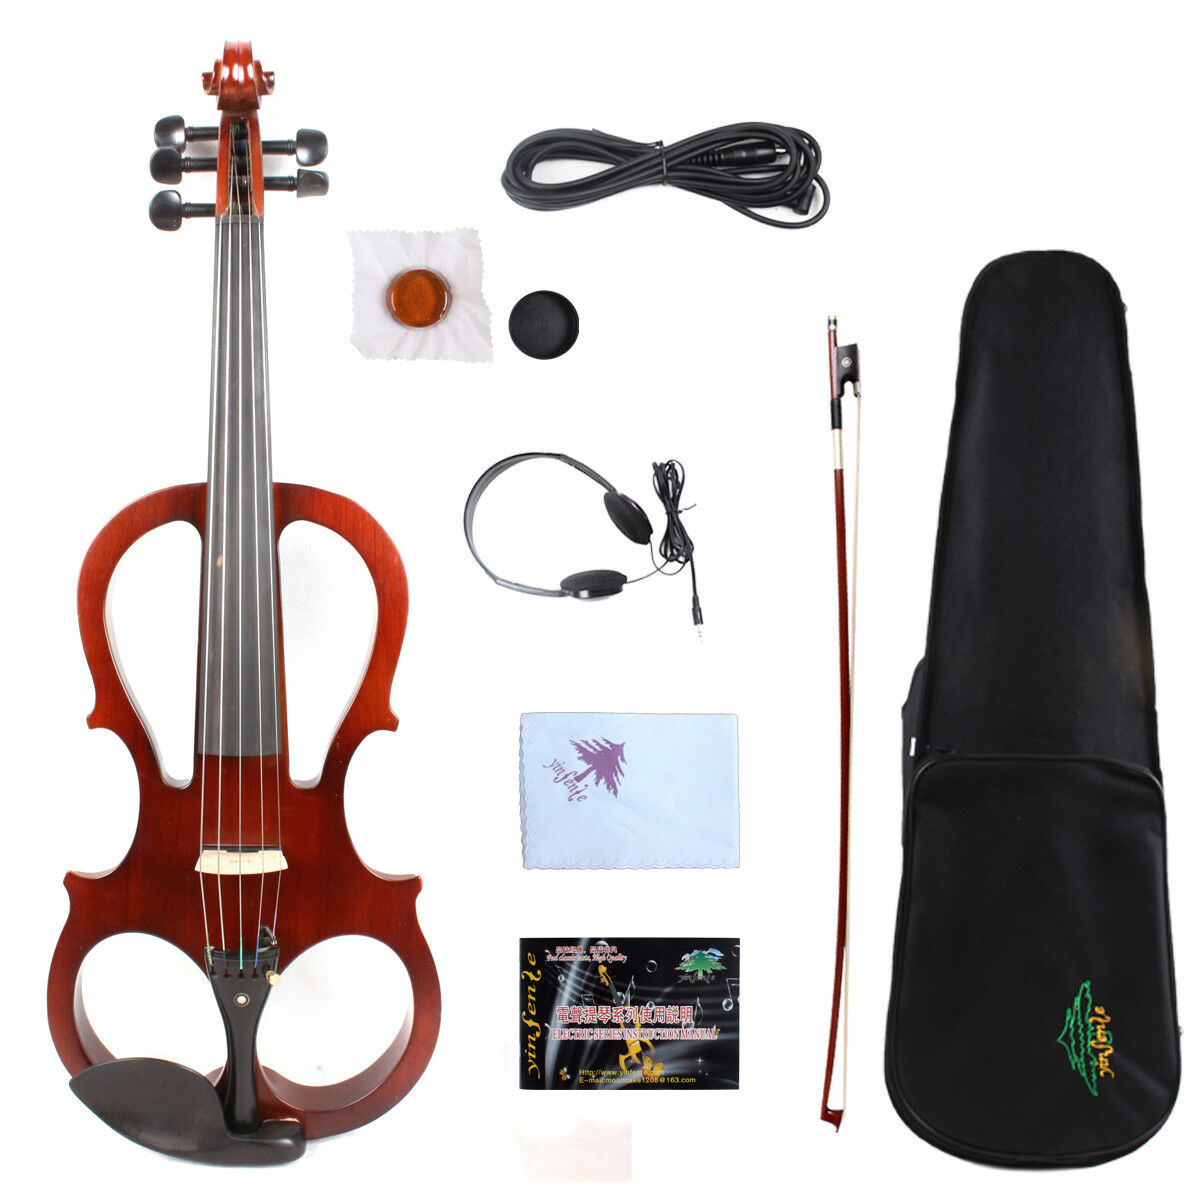 Yinfente 16 inch 5string Electric Silent purple Wooden Free Case+Bow+Cable  EL5